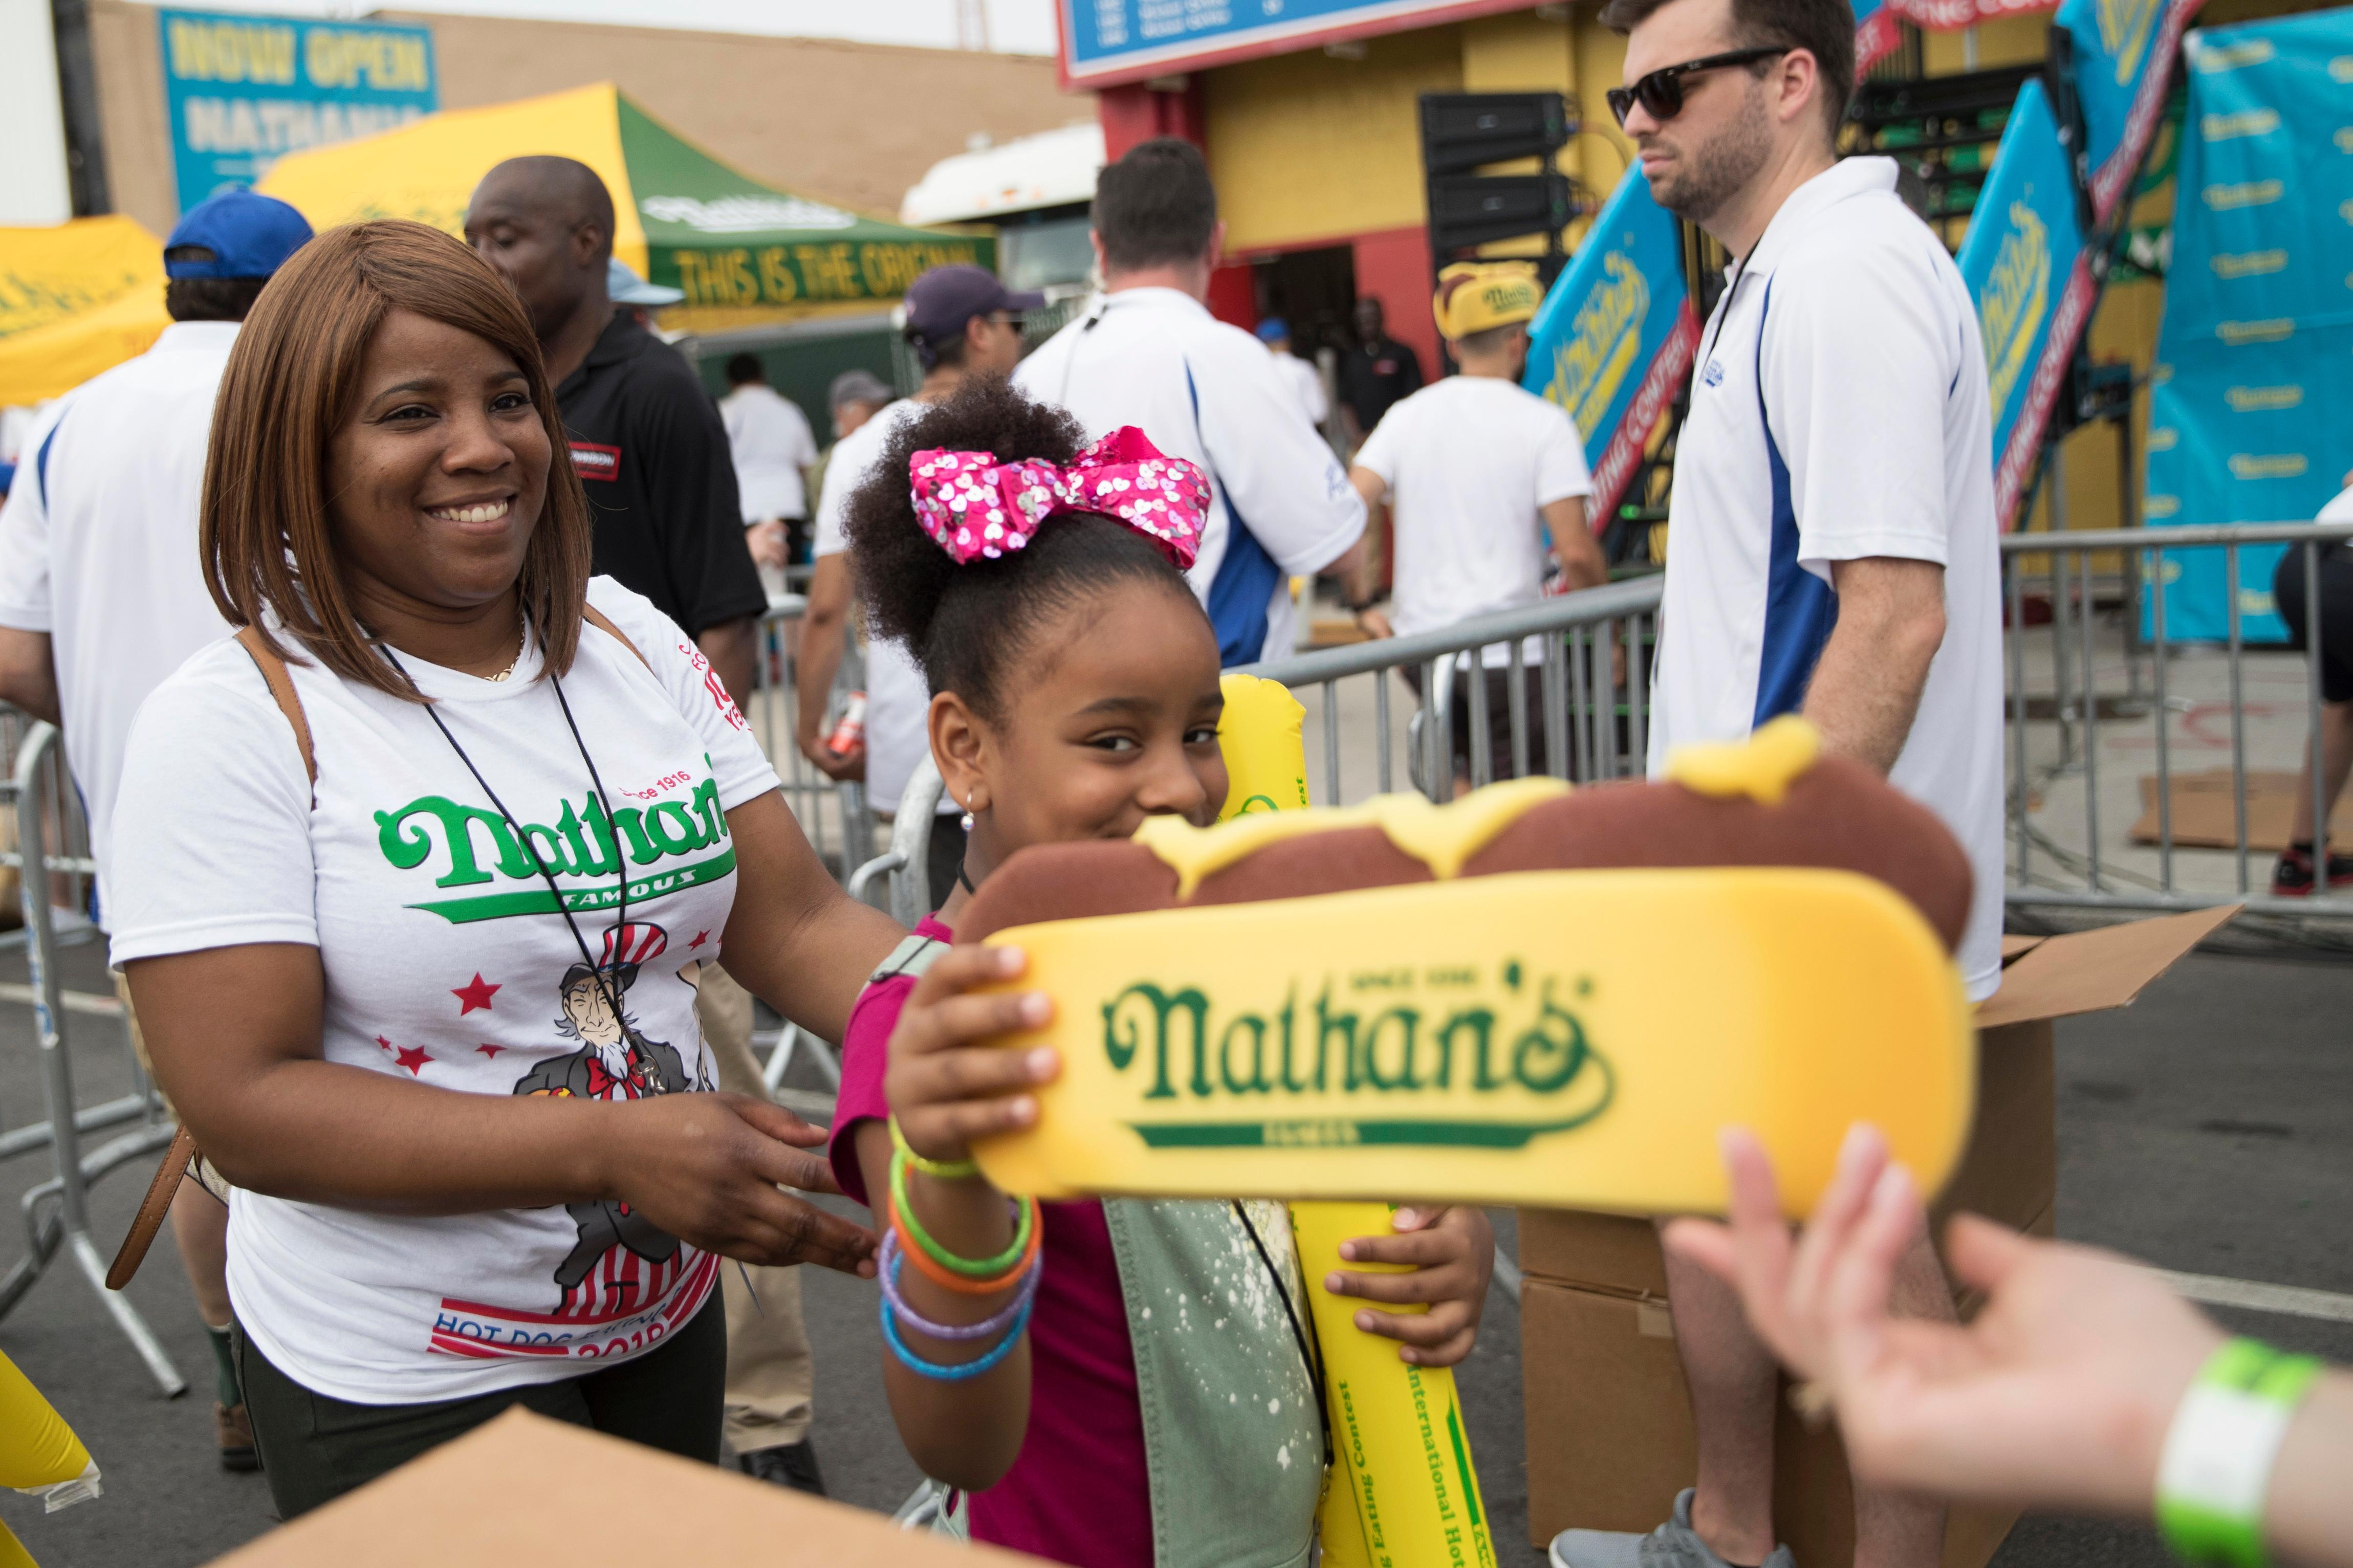 Hot dog hats are distributed to the fans as the enter the Nathan's Famous Fourth of July hot dog eating contest, Wednesday, July 4, 2018, in New York's Coney Island. (AP Photo/Mary Altaffer)